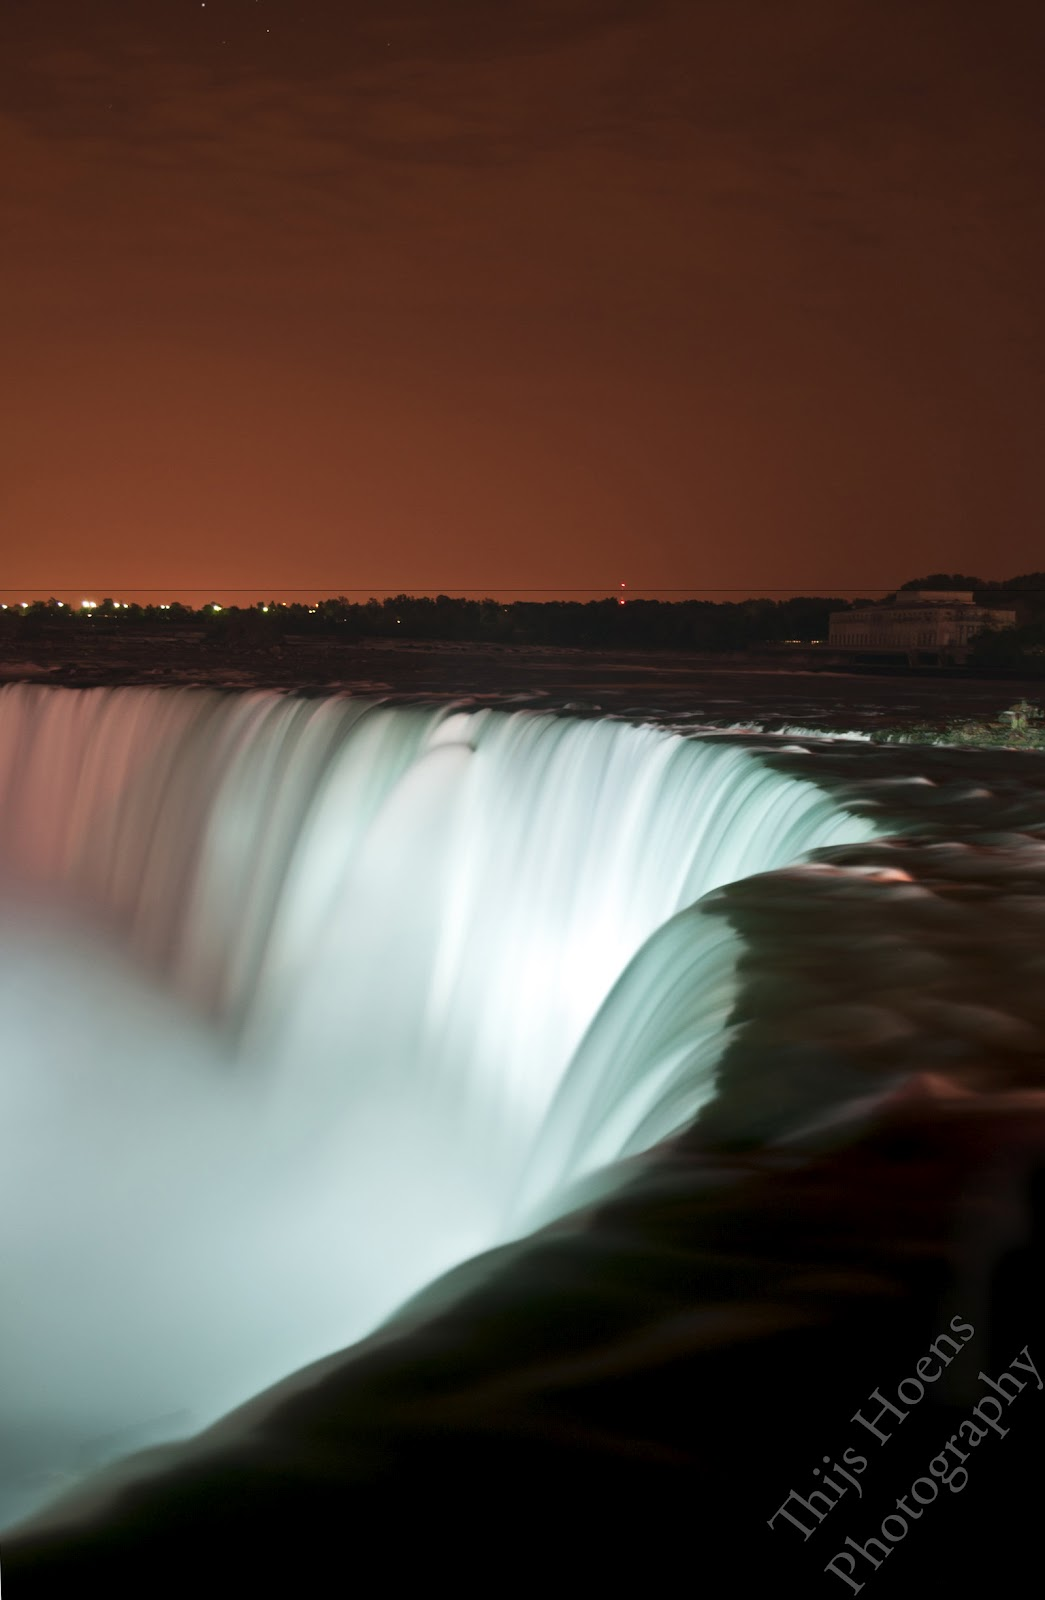 niagara-falls_photography-at-night-2012-2013